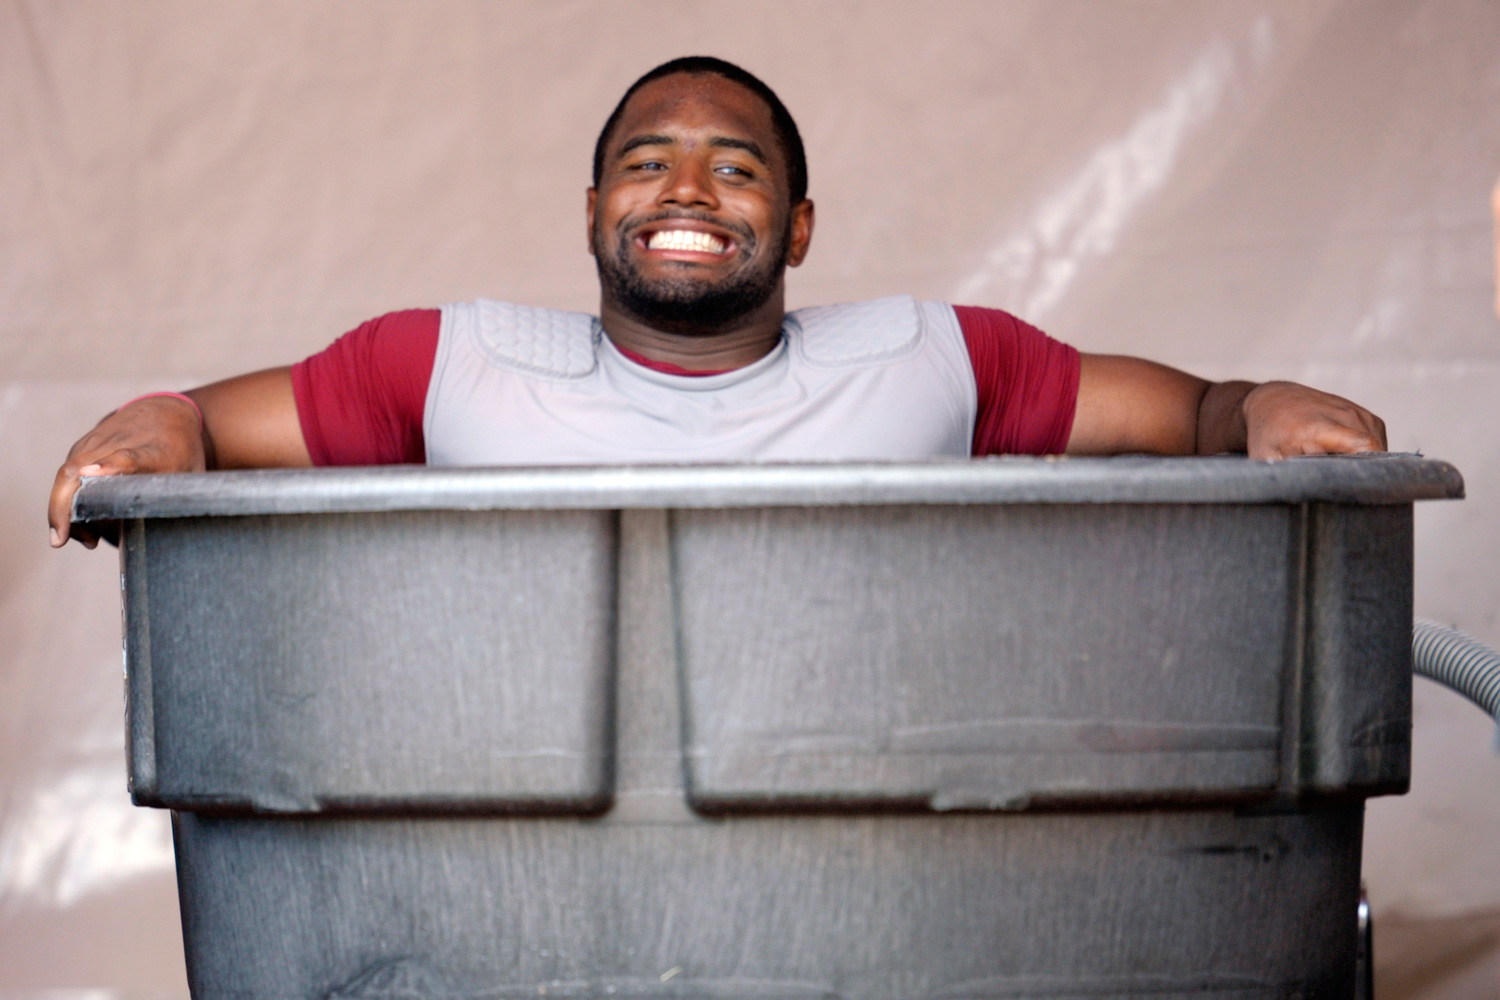 Washington Redskins fullback Darrel Young sighs as he sits in an ice bath after a day of training camp in July 2012.